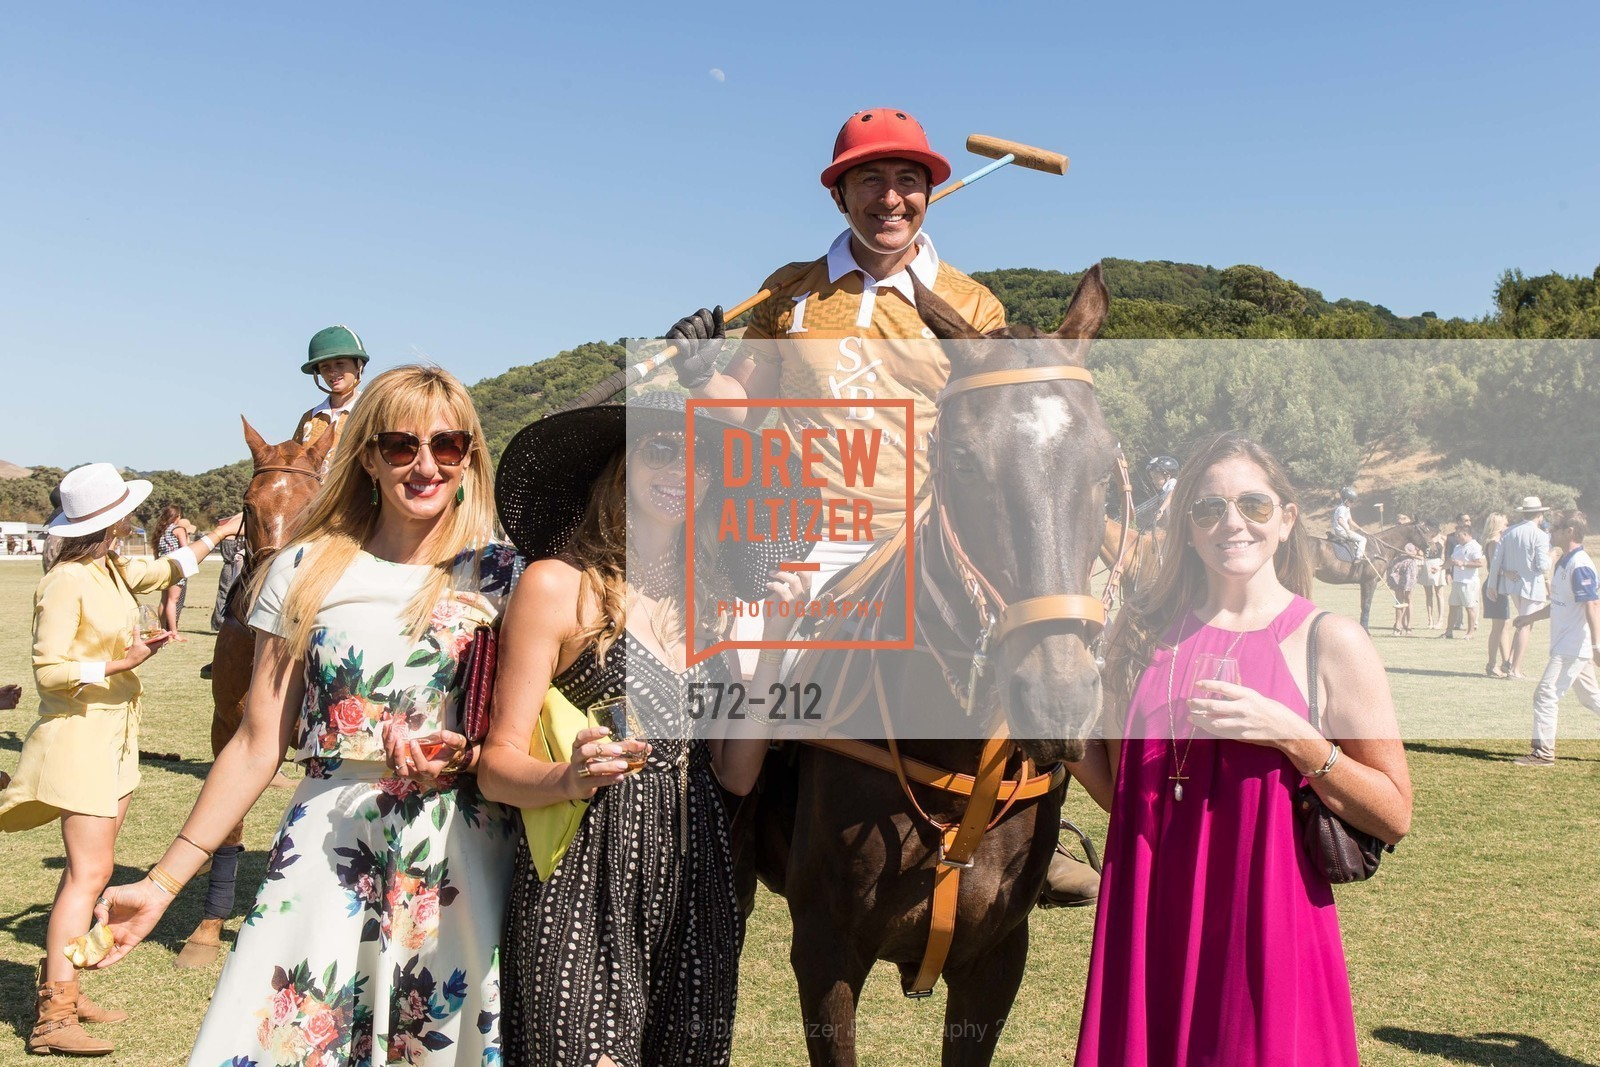 Teah Abbott, Brandy Anderson, Santos Arriola, Alex McGowan, Stick & Ball Oyster Cup Polo Tournament, Cerro Pampa Polo Club, July 25th, 2015,Drew Altizer, Drew Altizer Photography, full-service agency, private events, San Francisco photographer, photographer california